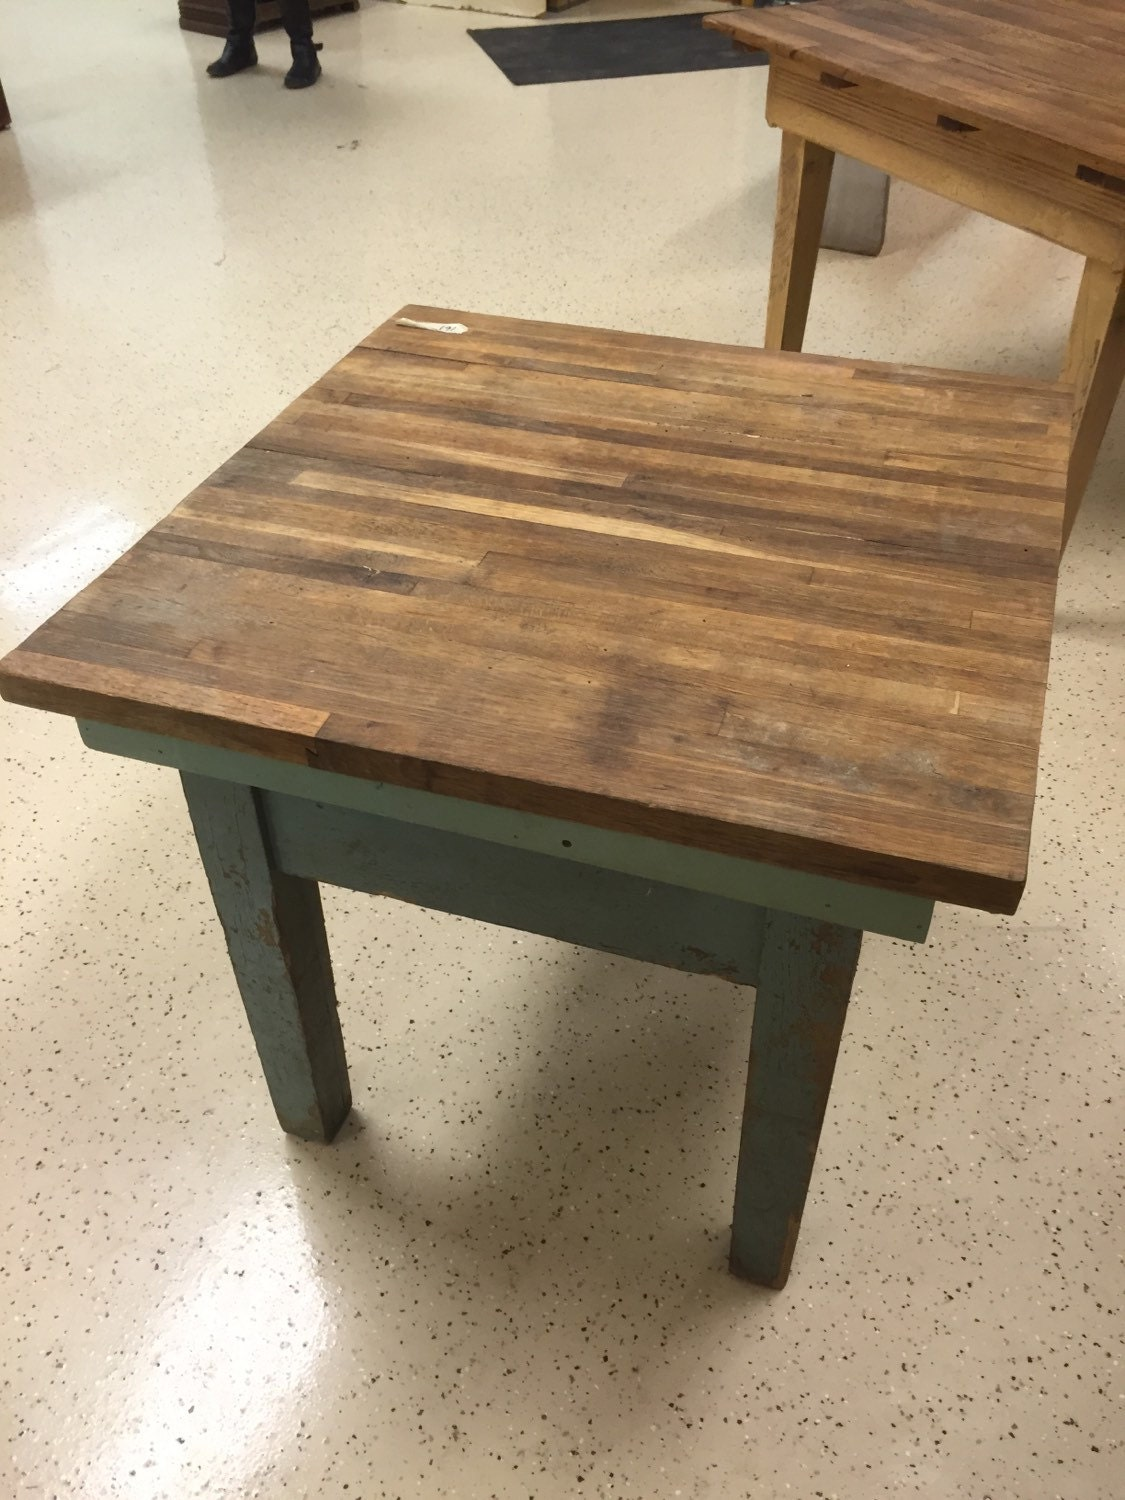 custom made butcher block table antique base with old paint